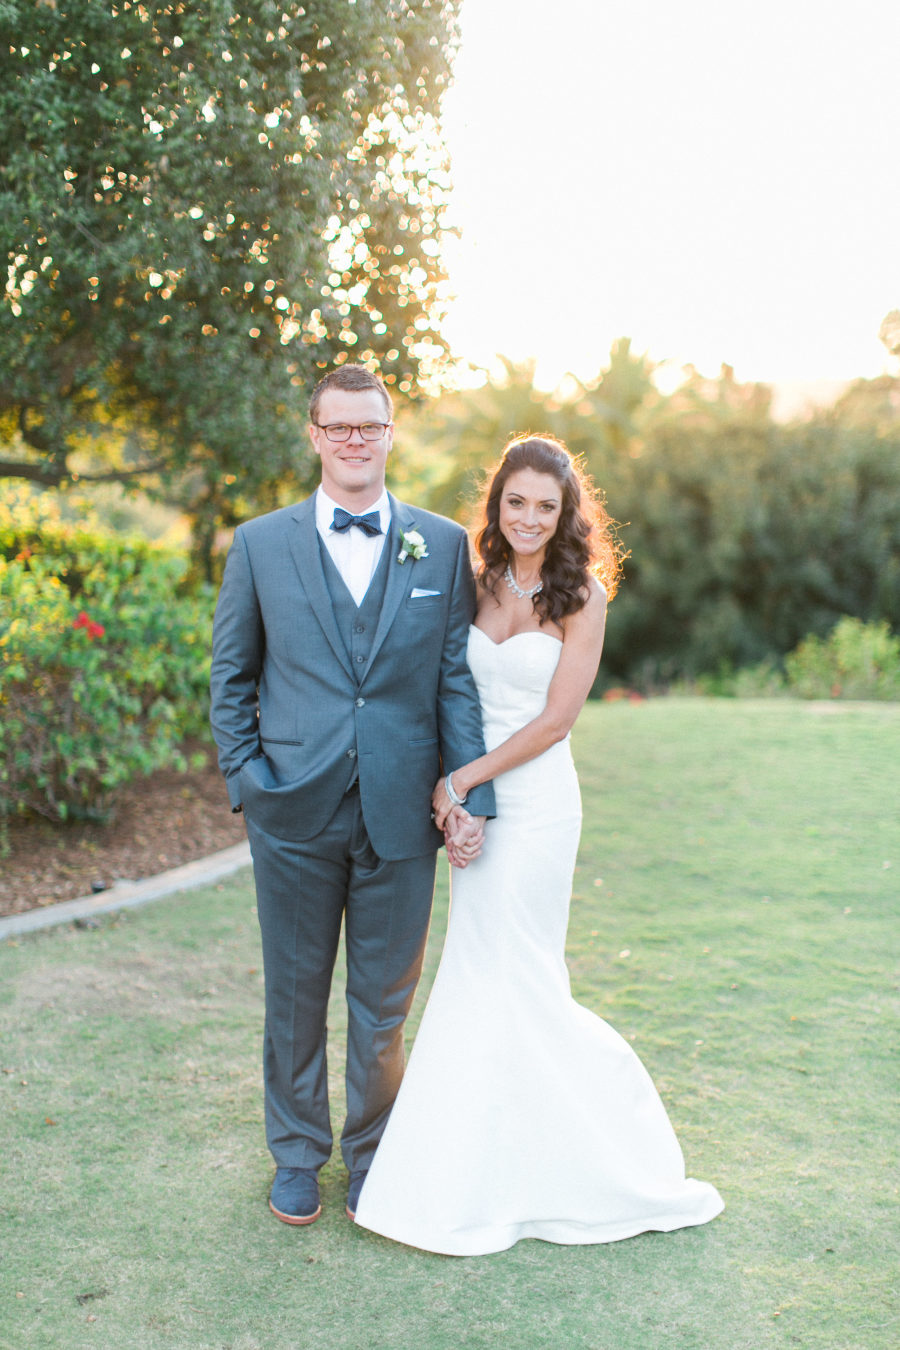 a plain strapless mermaid wedding gown and a statement necklace are a nice choice for a modern glam bride